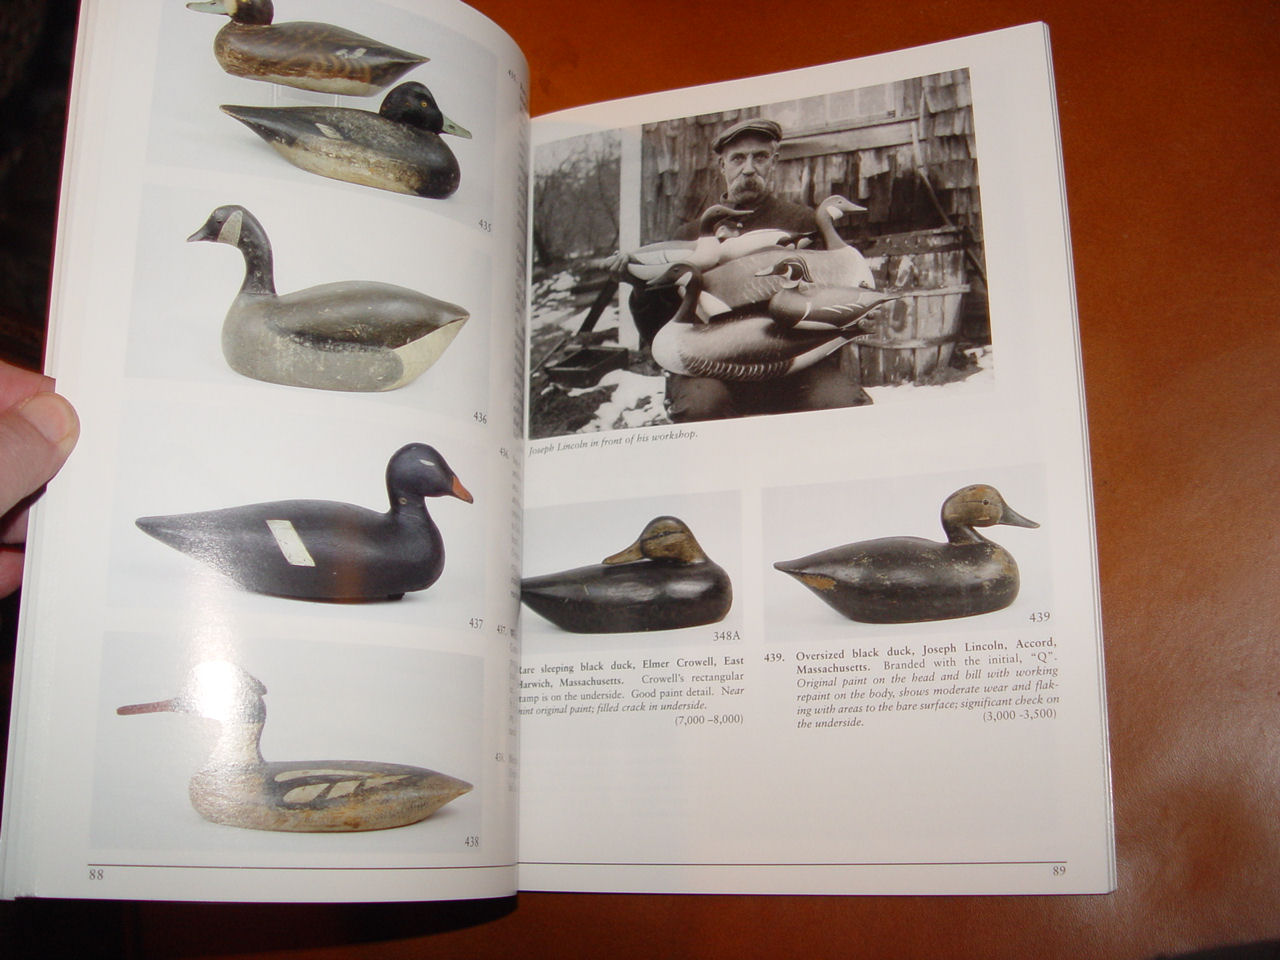 GUYETTE AND SCHMIDT                                         NORTH AMERICAN DECOYS AT AUCTION                                         - JULY 30 & 31, 2005